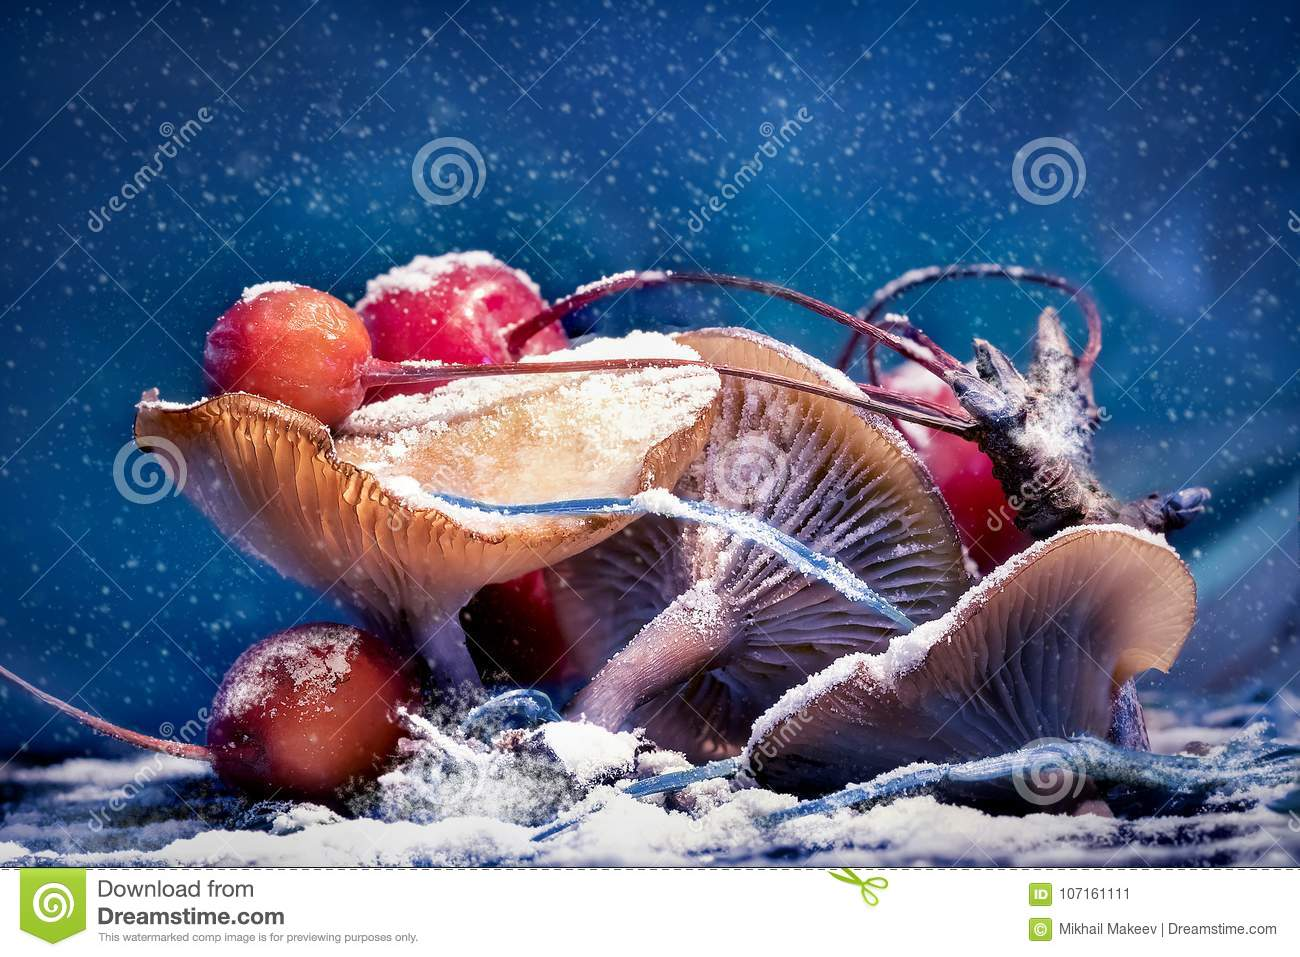 Mushrooms and red berries in snow and frost on a blue background. Christmas artistic image